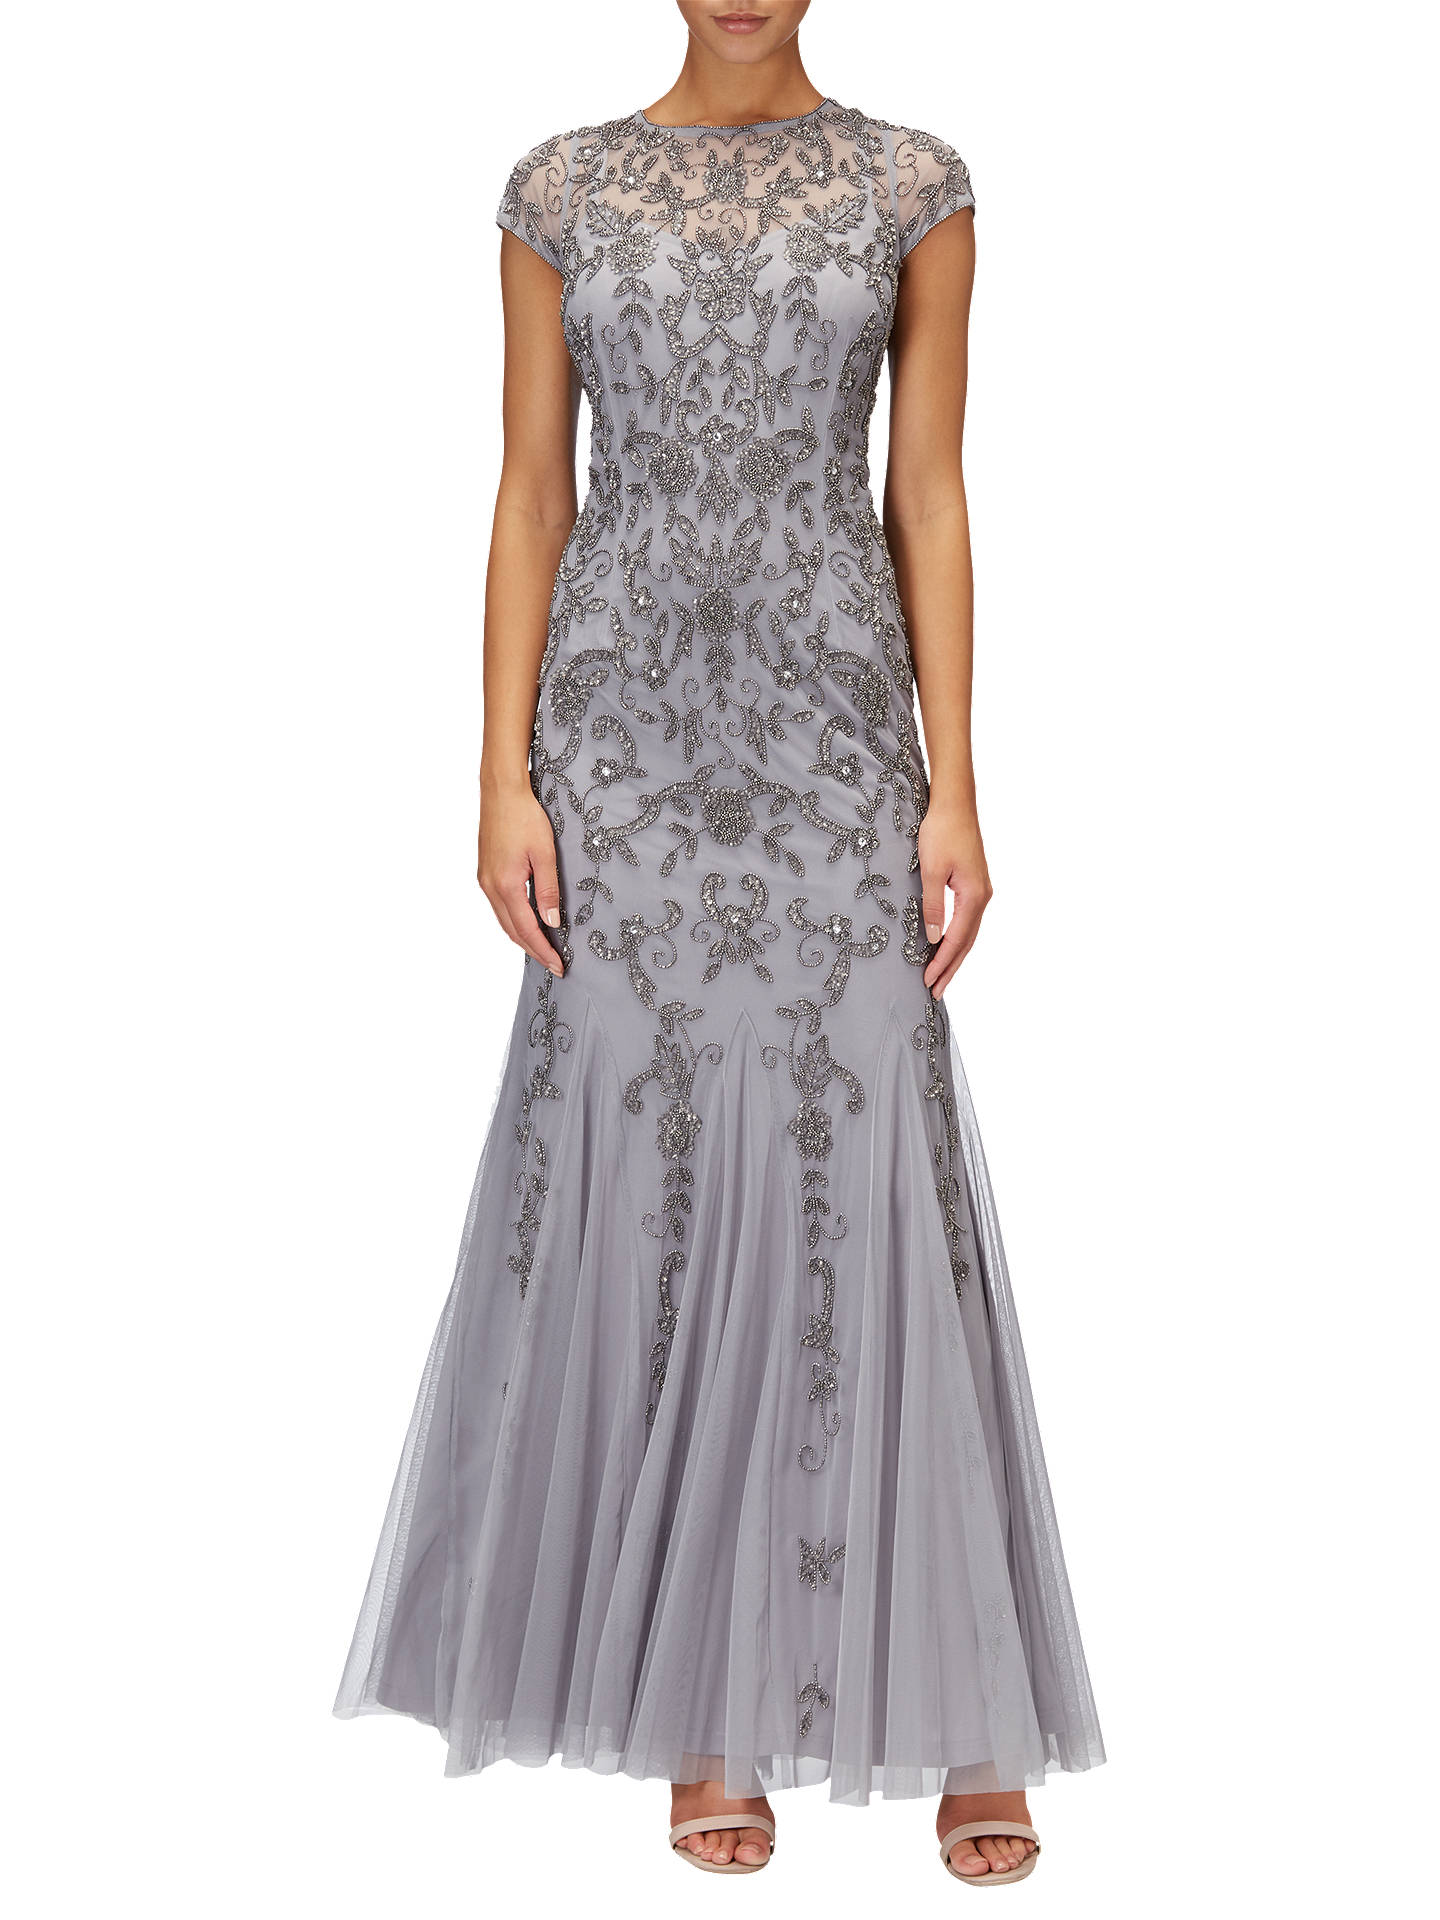 018f34367cfb9 Adrianna Papell Long Beaded Mermaid Dress, Silver/Grey at John Lewis ...